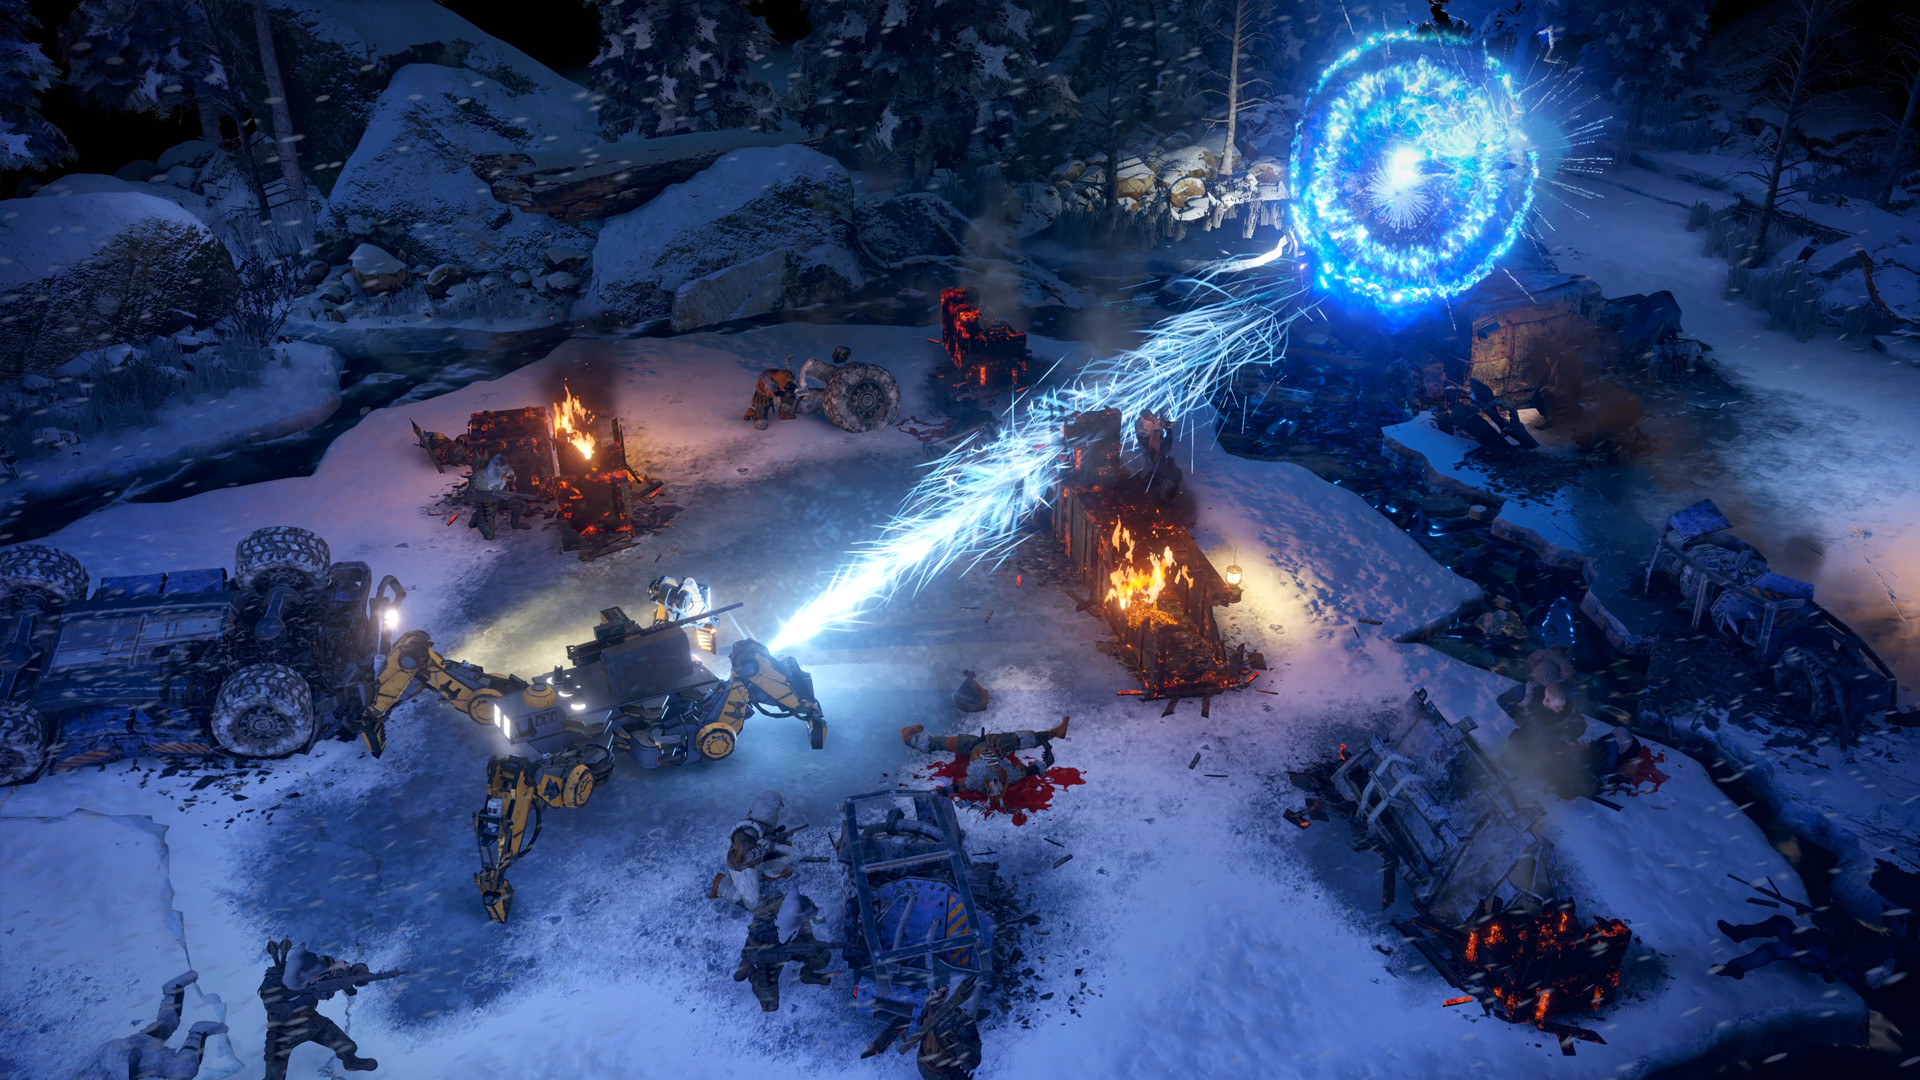 Find the best laptop for Wasteland 3